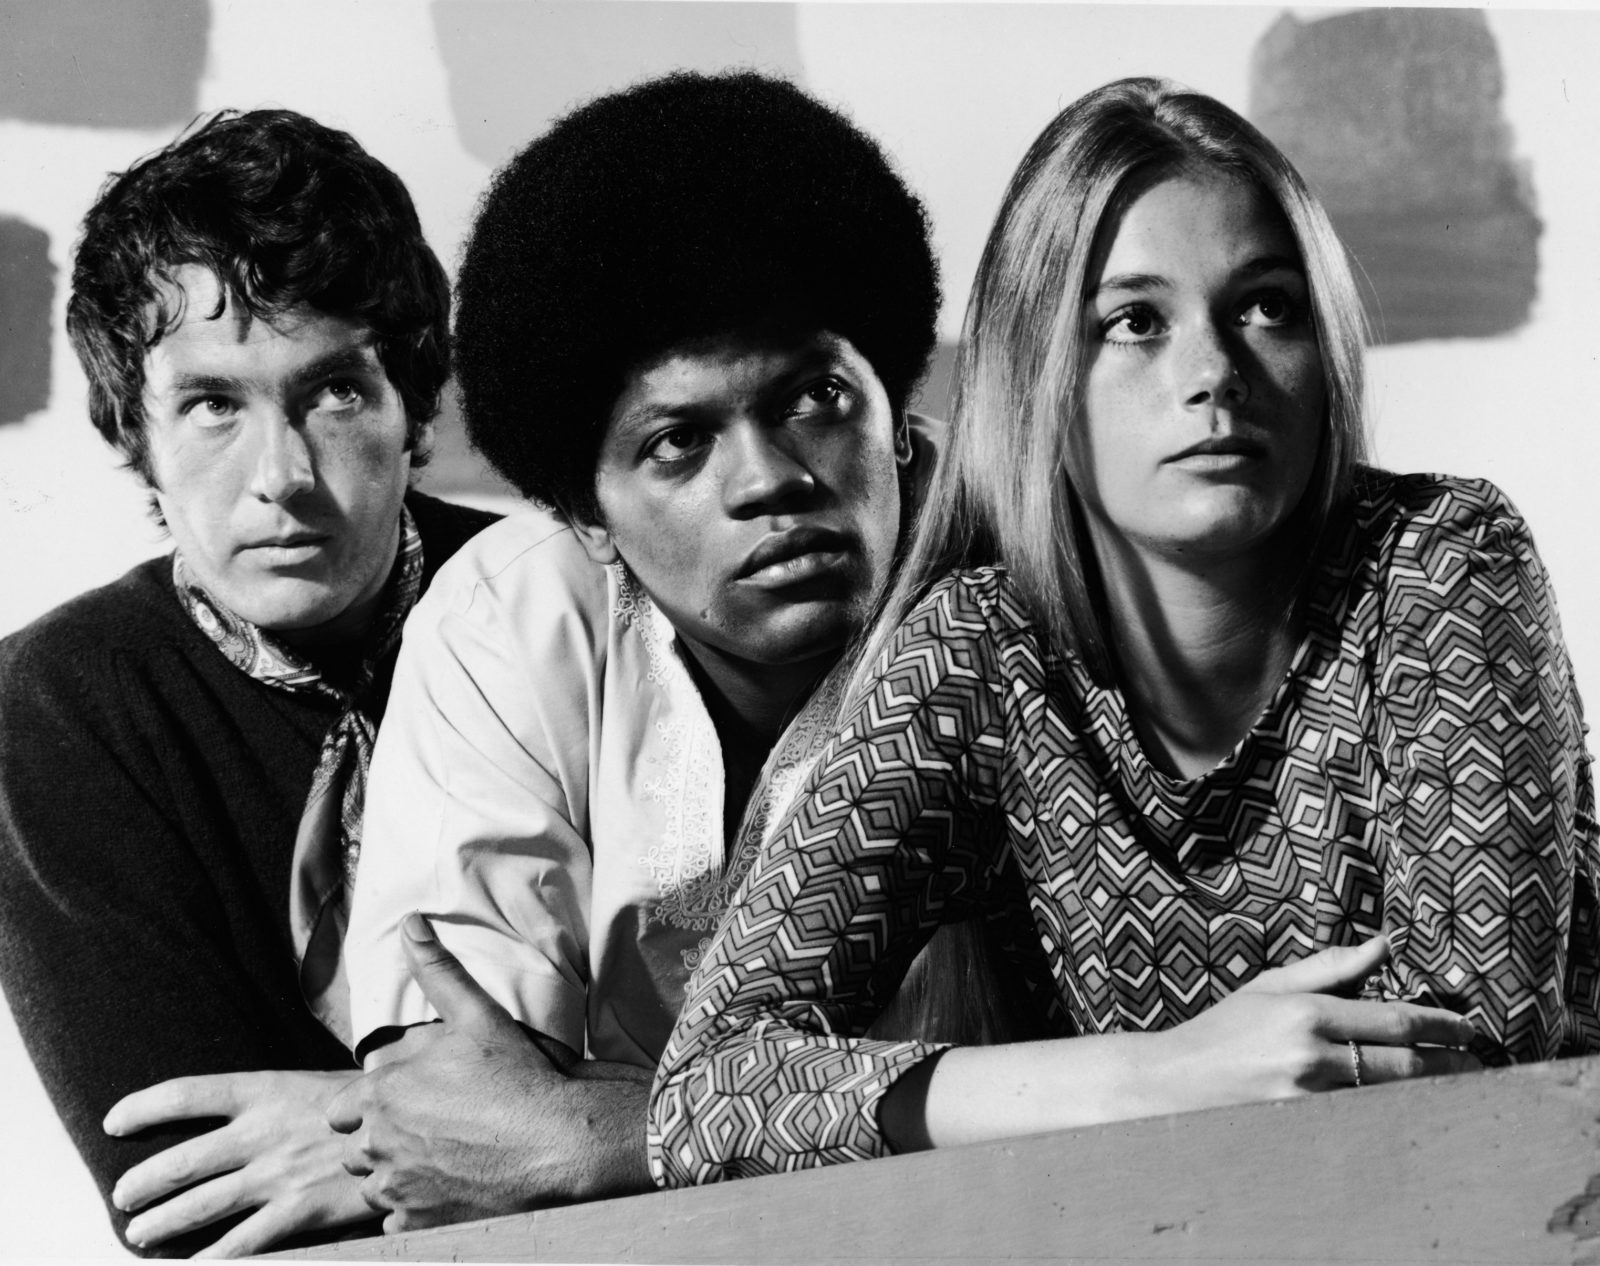 Michael Cole, Clarence Williams III and Peggy Lipton in 1968 on The Mod Squad. Source: Getty.